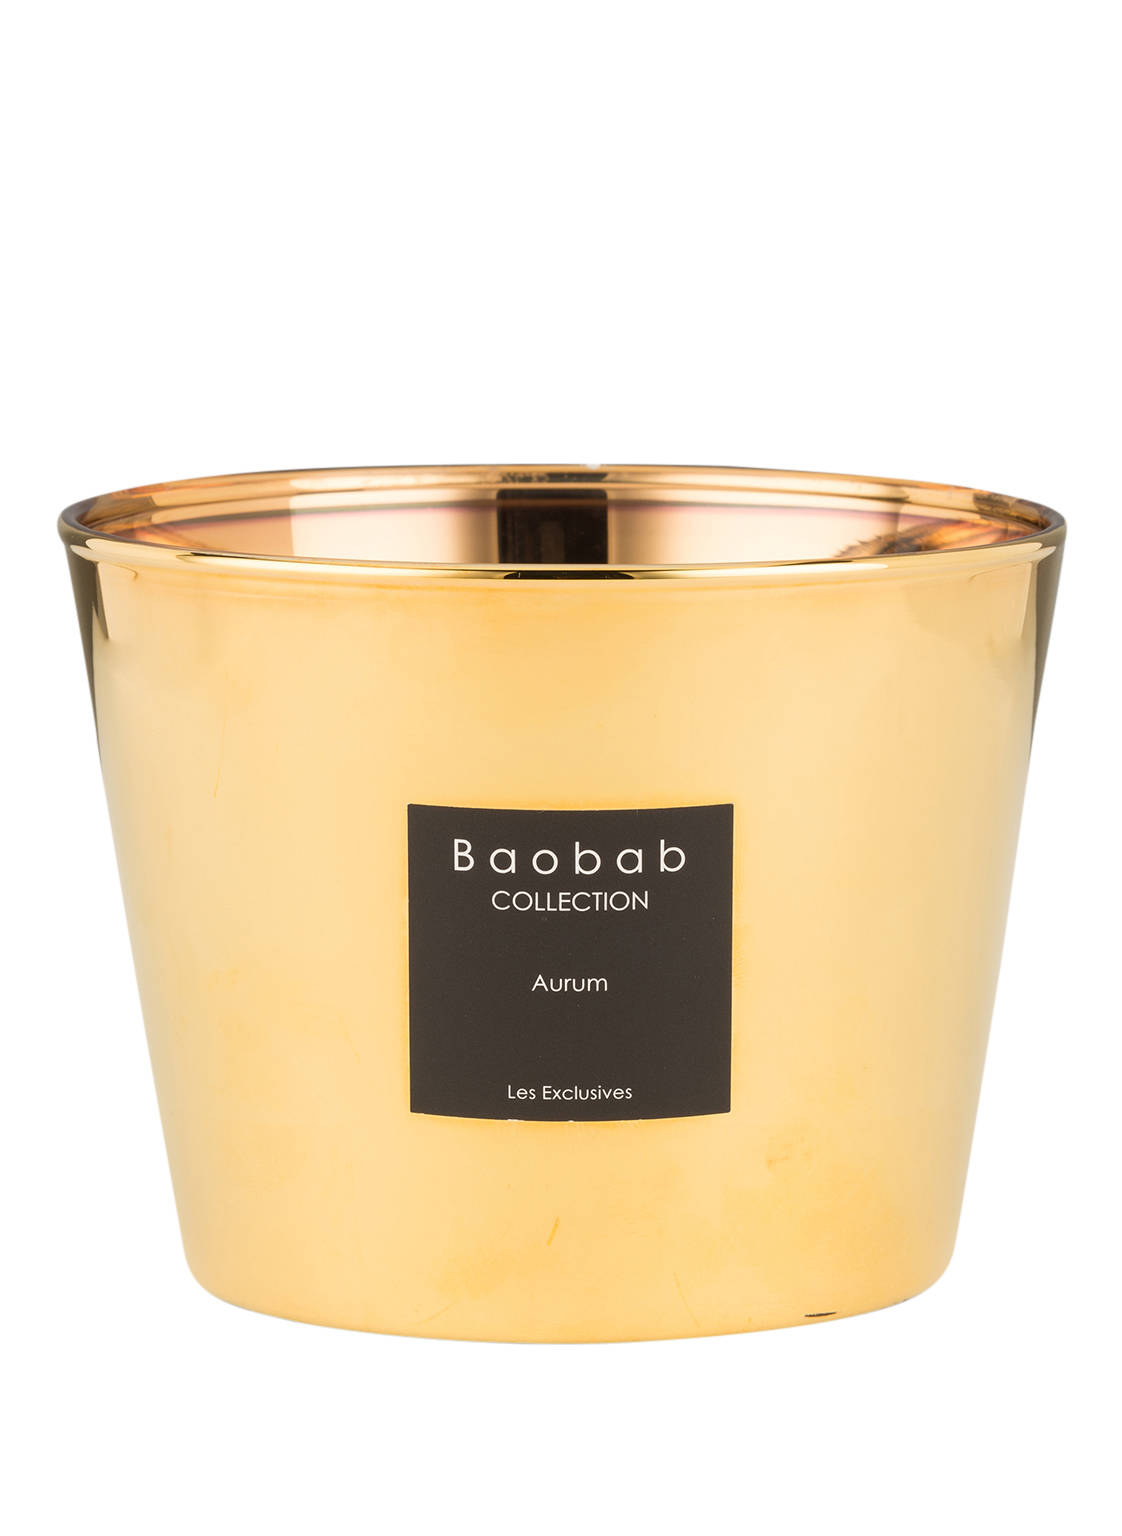 Image of Baobab Collection Duftkerze Aurum gold